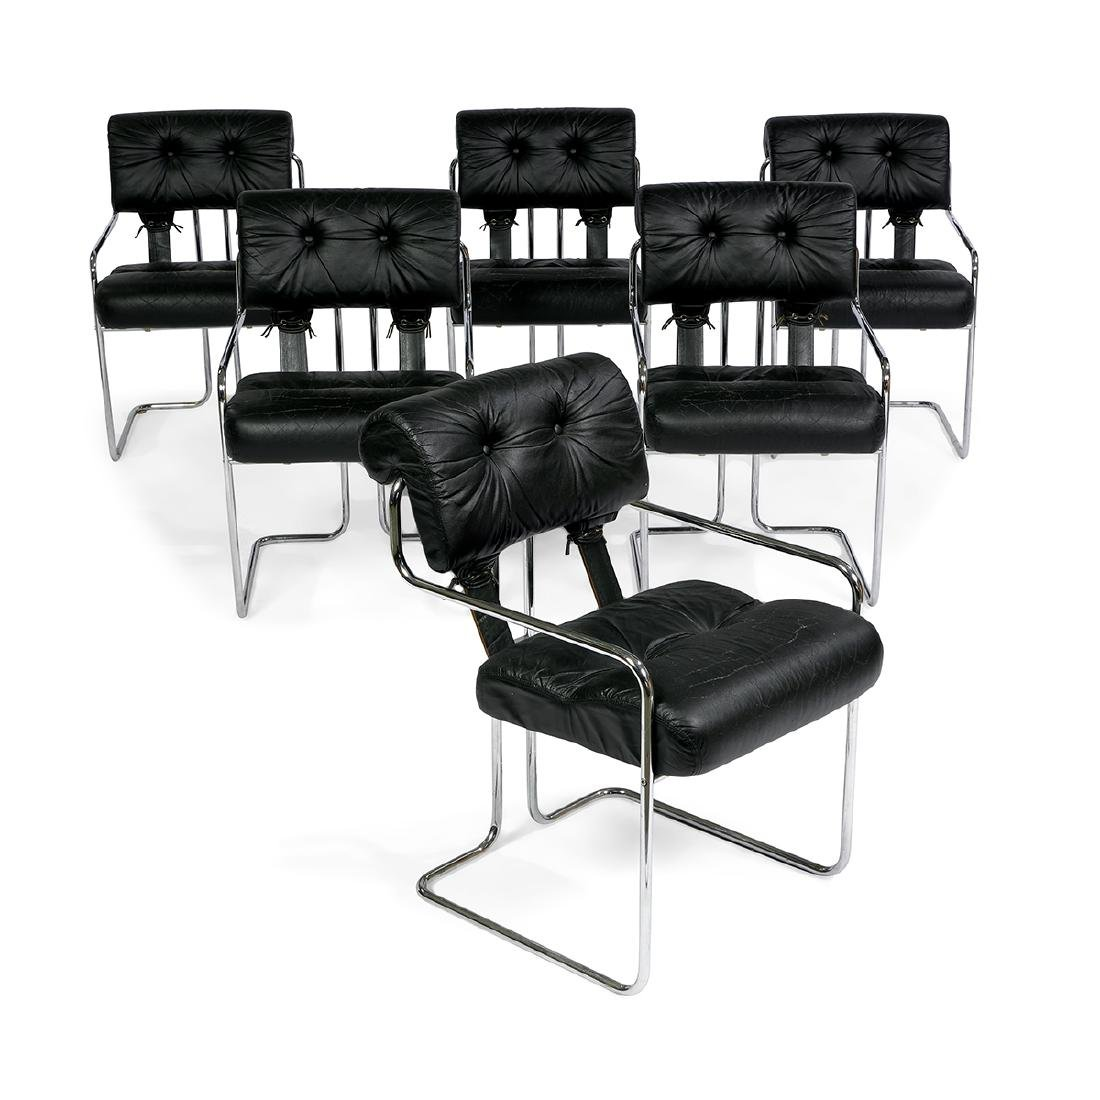 Guido Faleschini for Pace Tucroma chairs, six